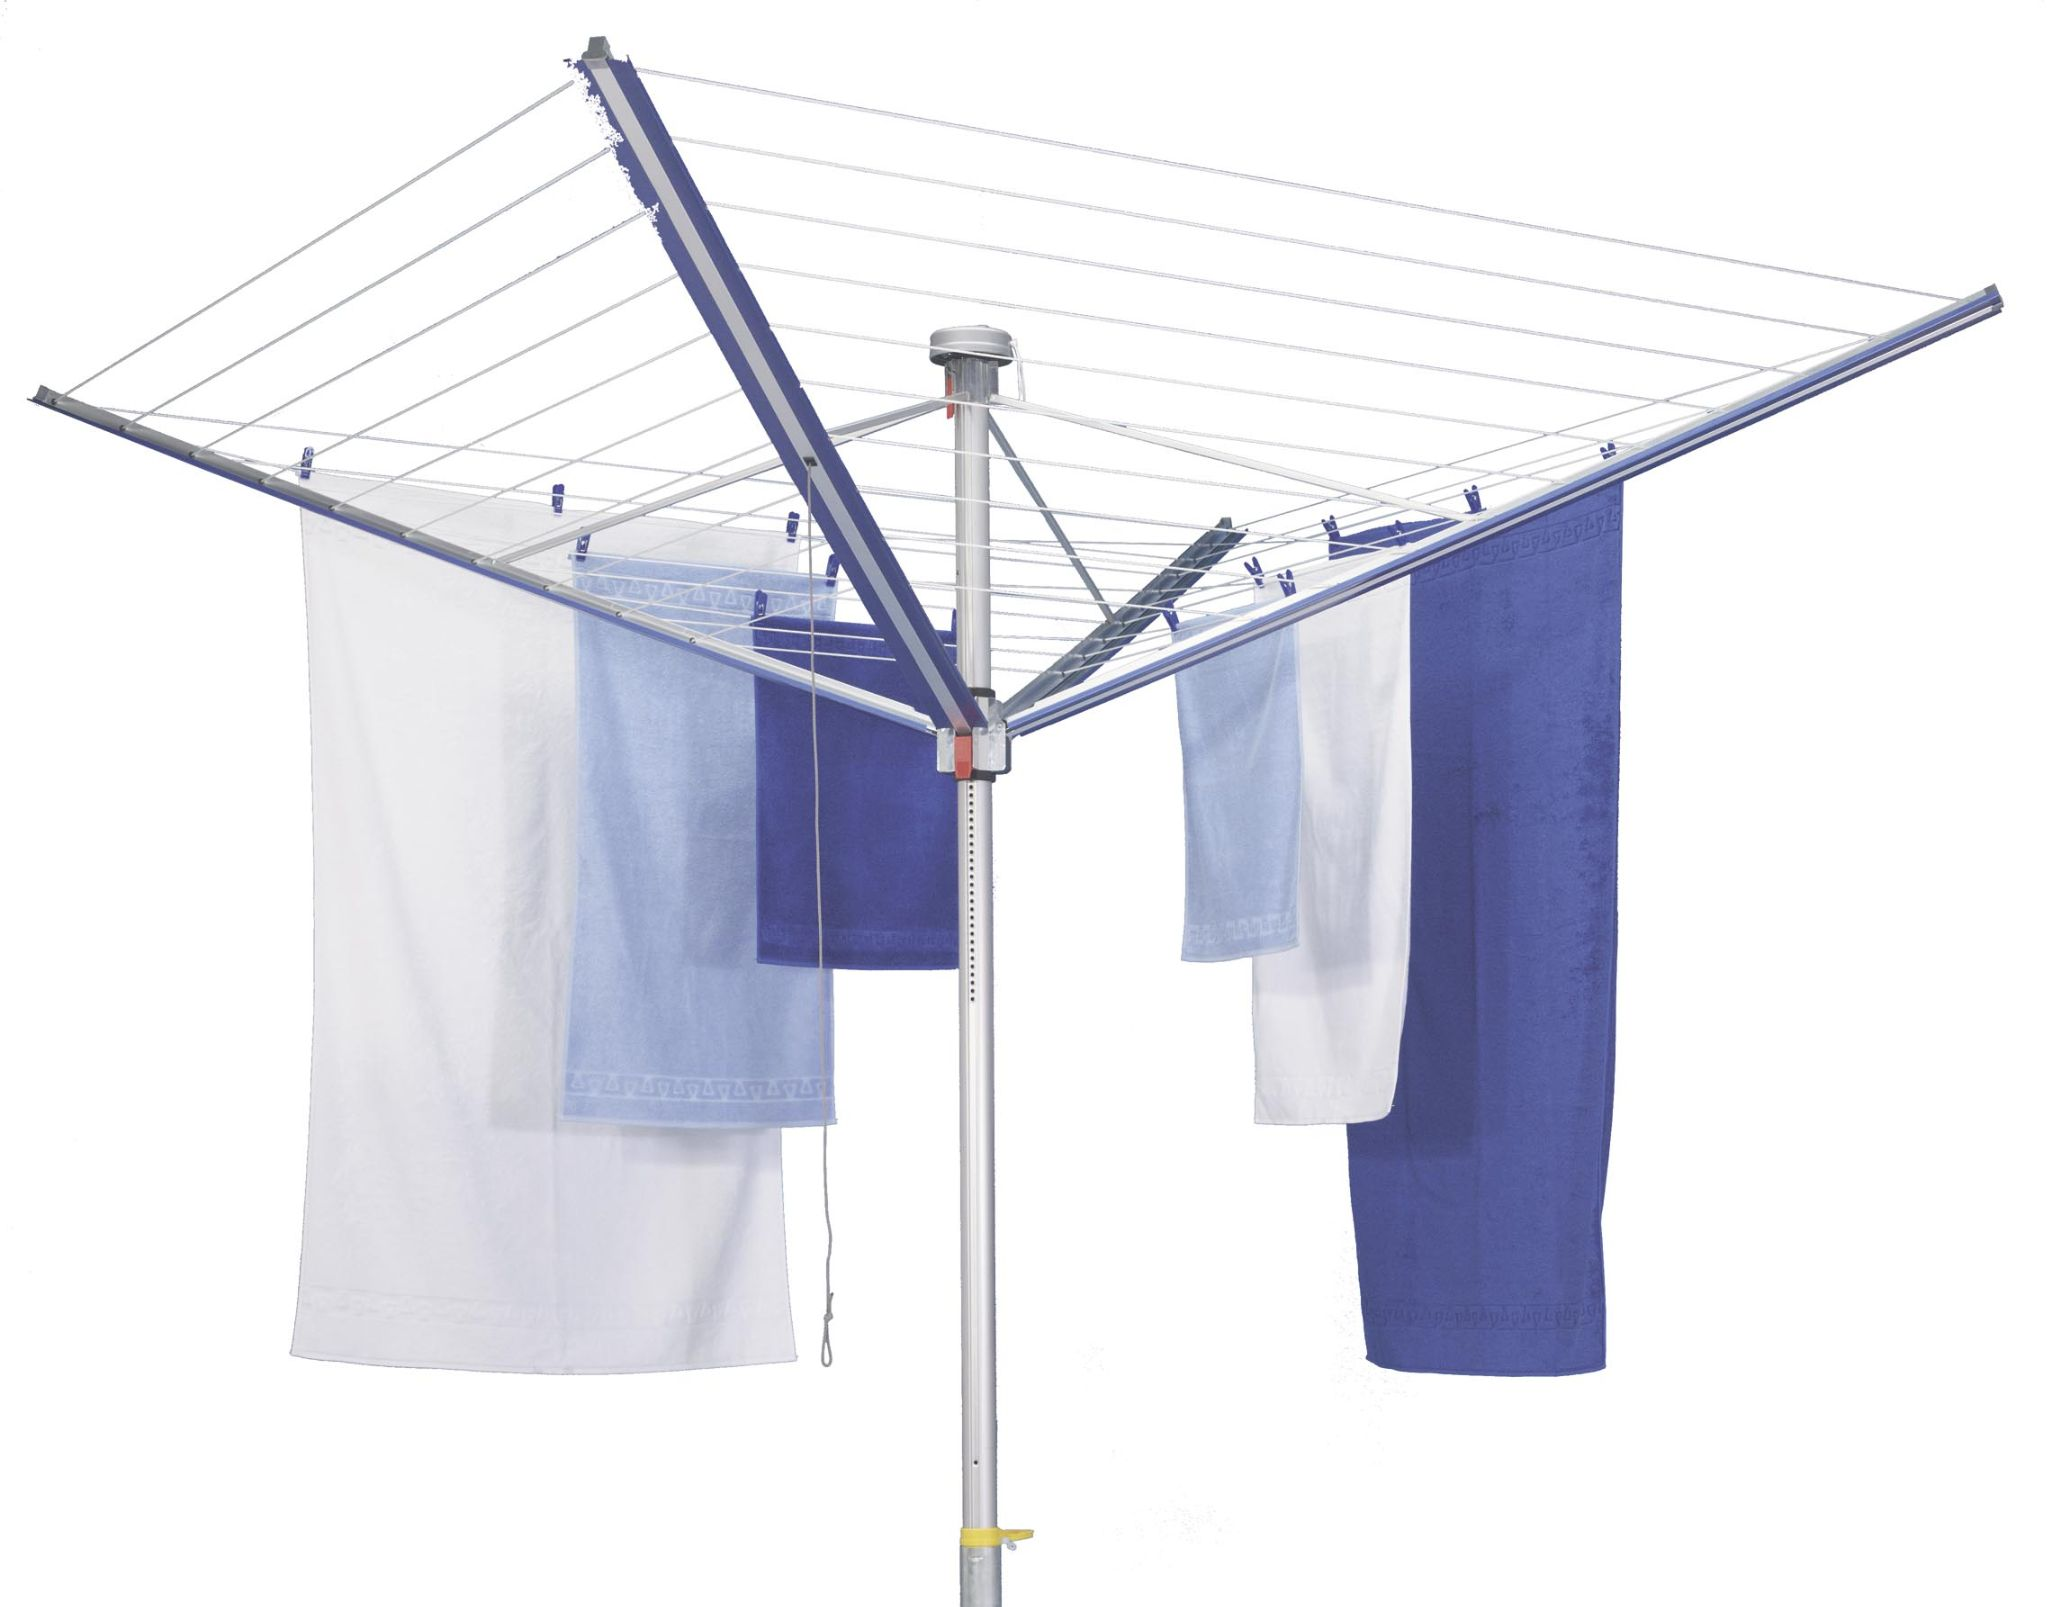 stewi first lady rotary dryer urban clotheslines. Black Bedroom Furniture Sets. Home Design Ideas